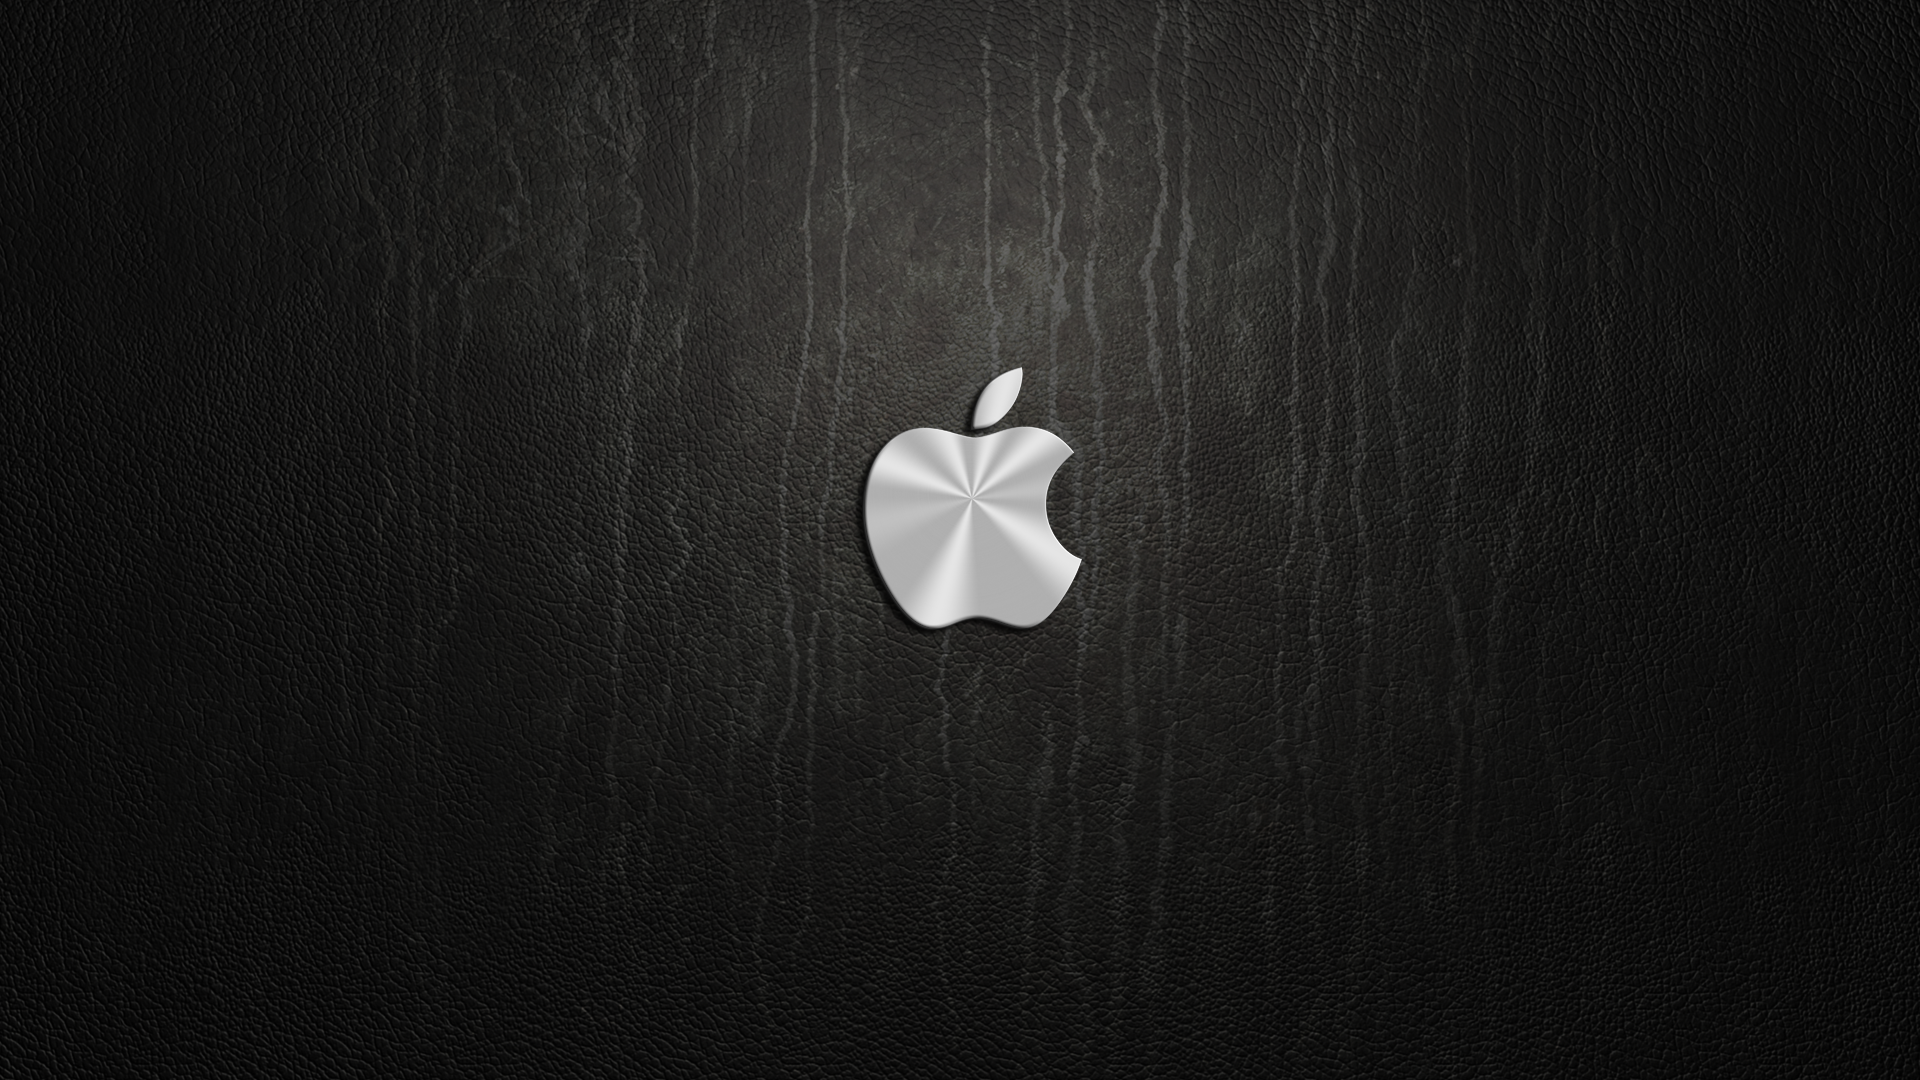 Apple Full HD Wallpaper And Background Image